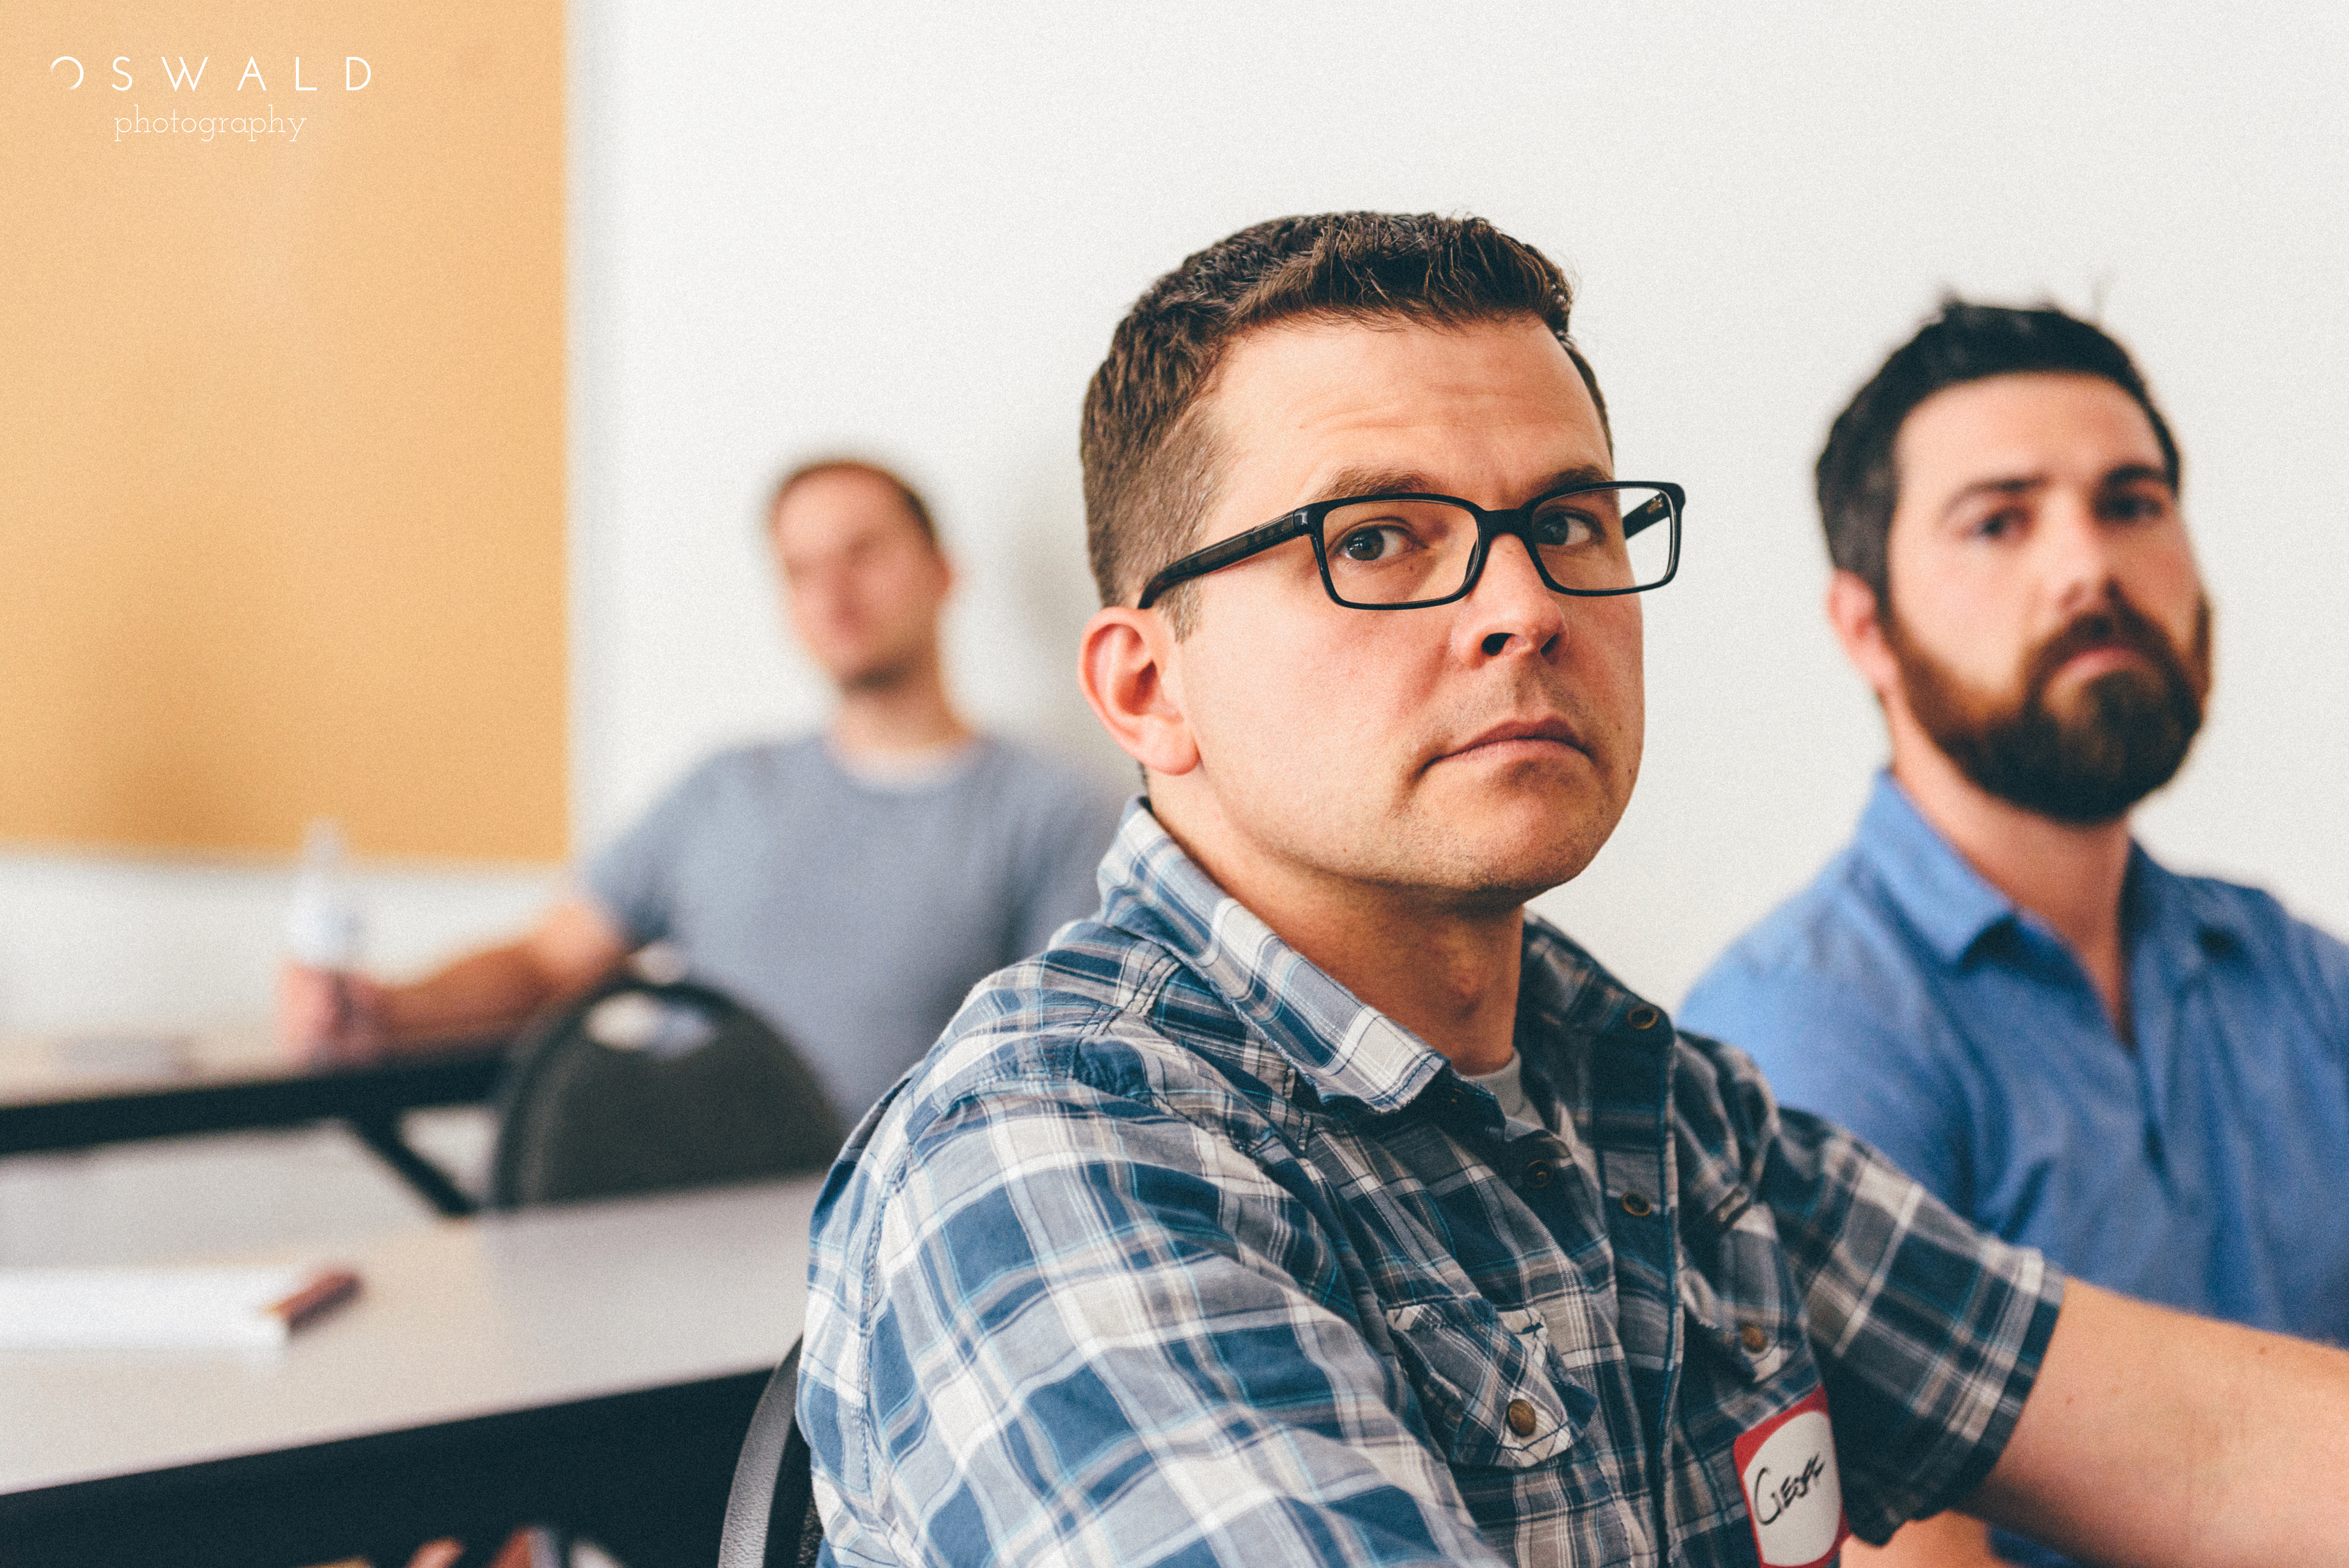 Photograph of three young seminary students in the classroom at Western Seminary.